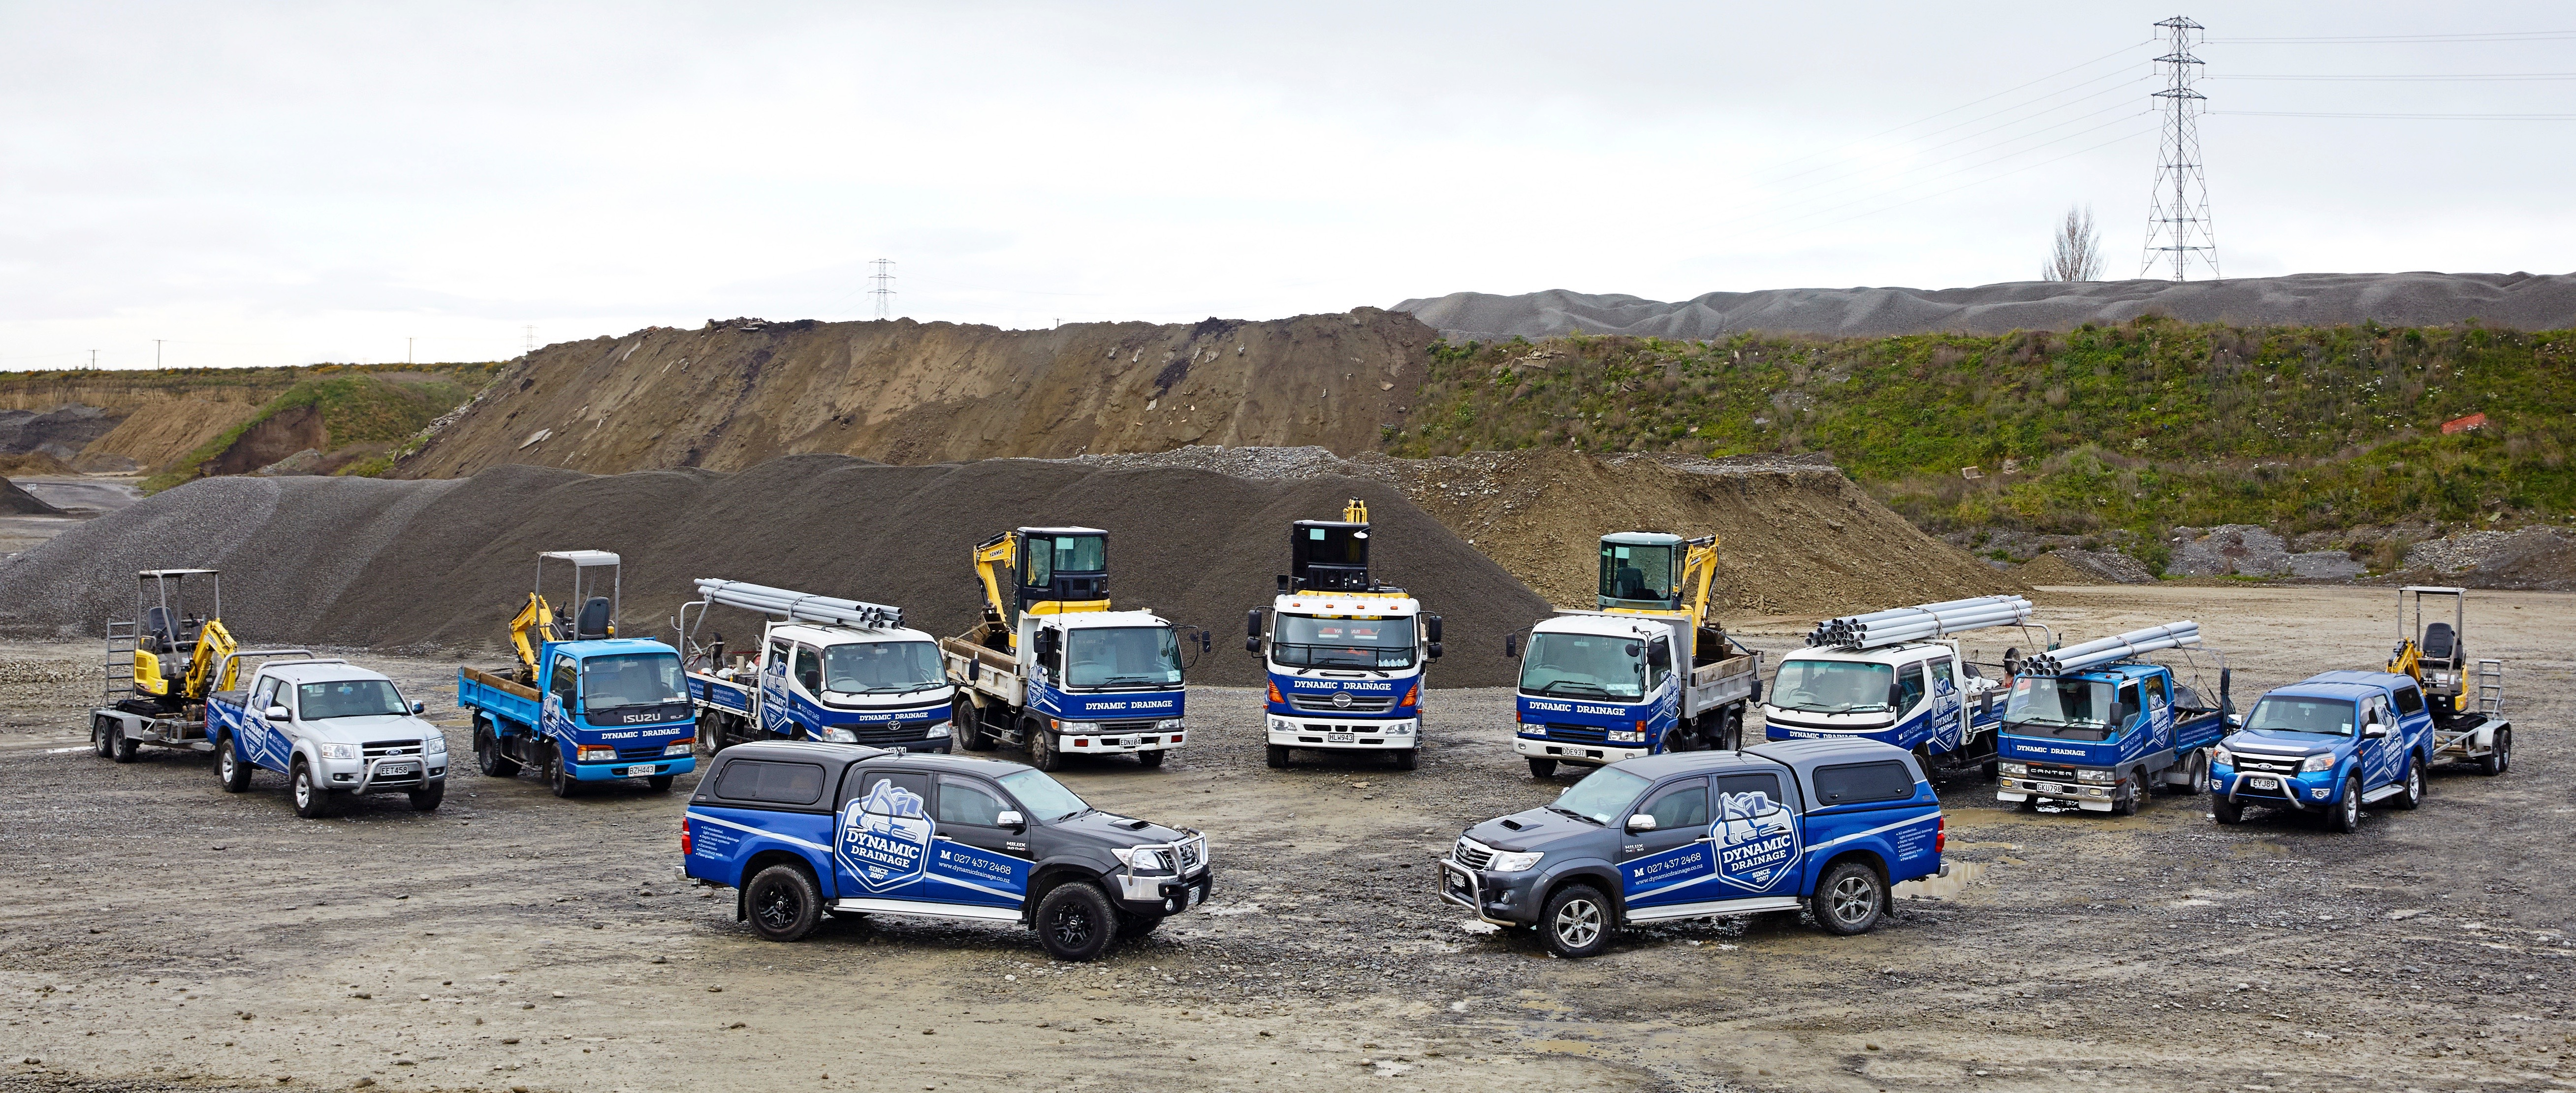 dynamic drainage fleet photo FORMATTED 2